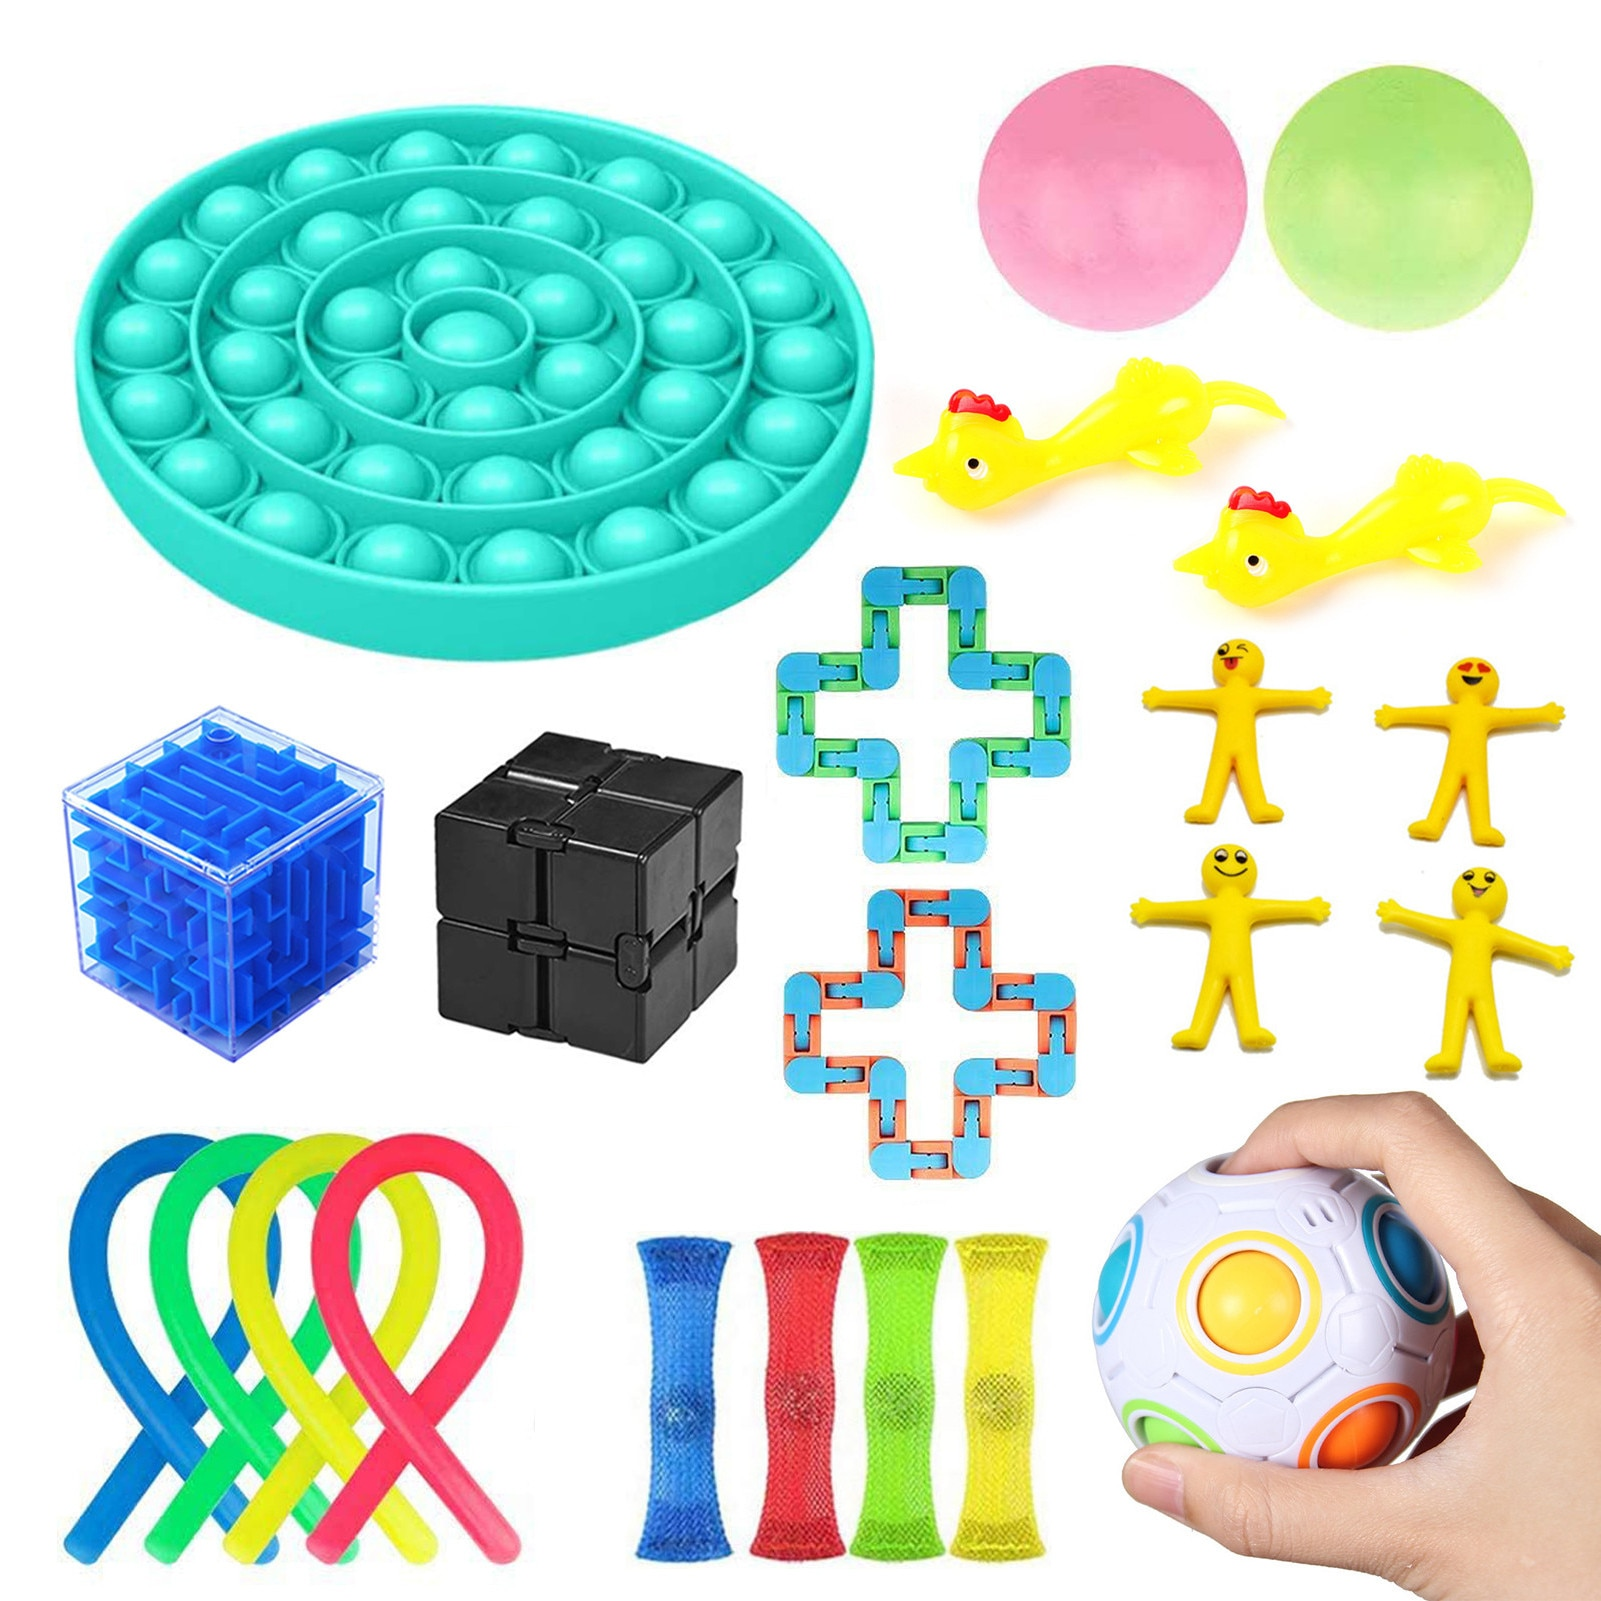 24 PackSensory Toy Set Stress Relief Toys Pressure Ball Noodle Rope For Kids Adults Autism Decompression Toy Puzzle Game